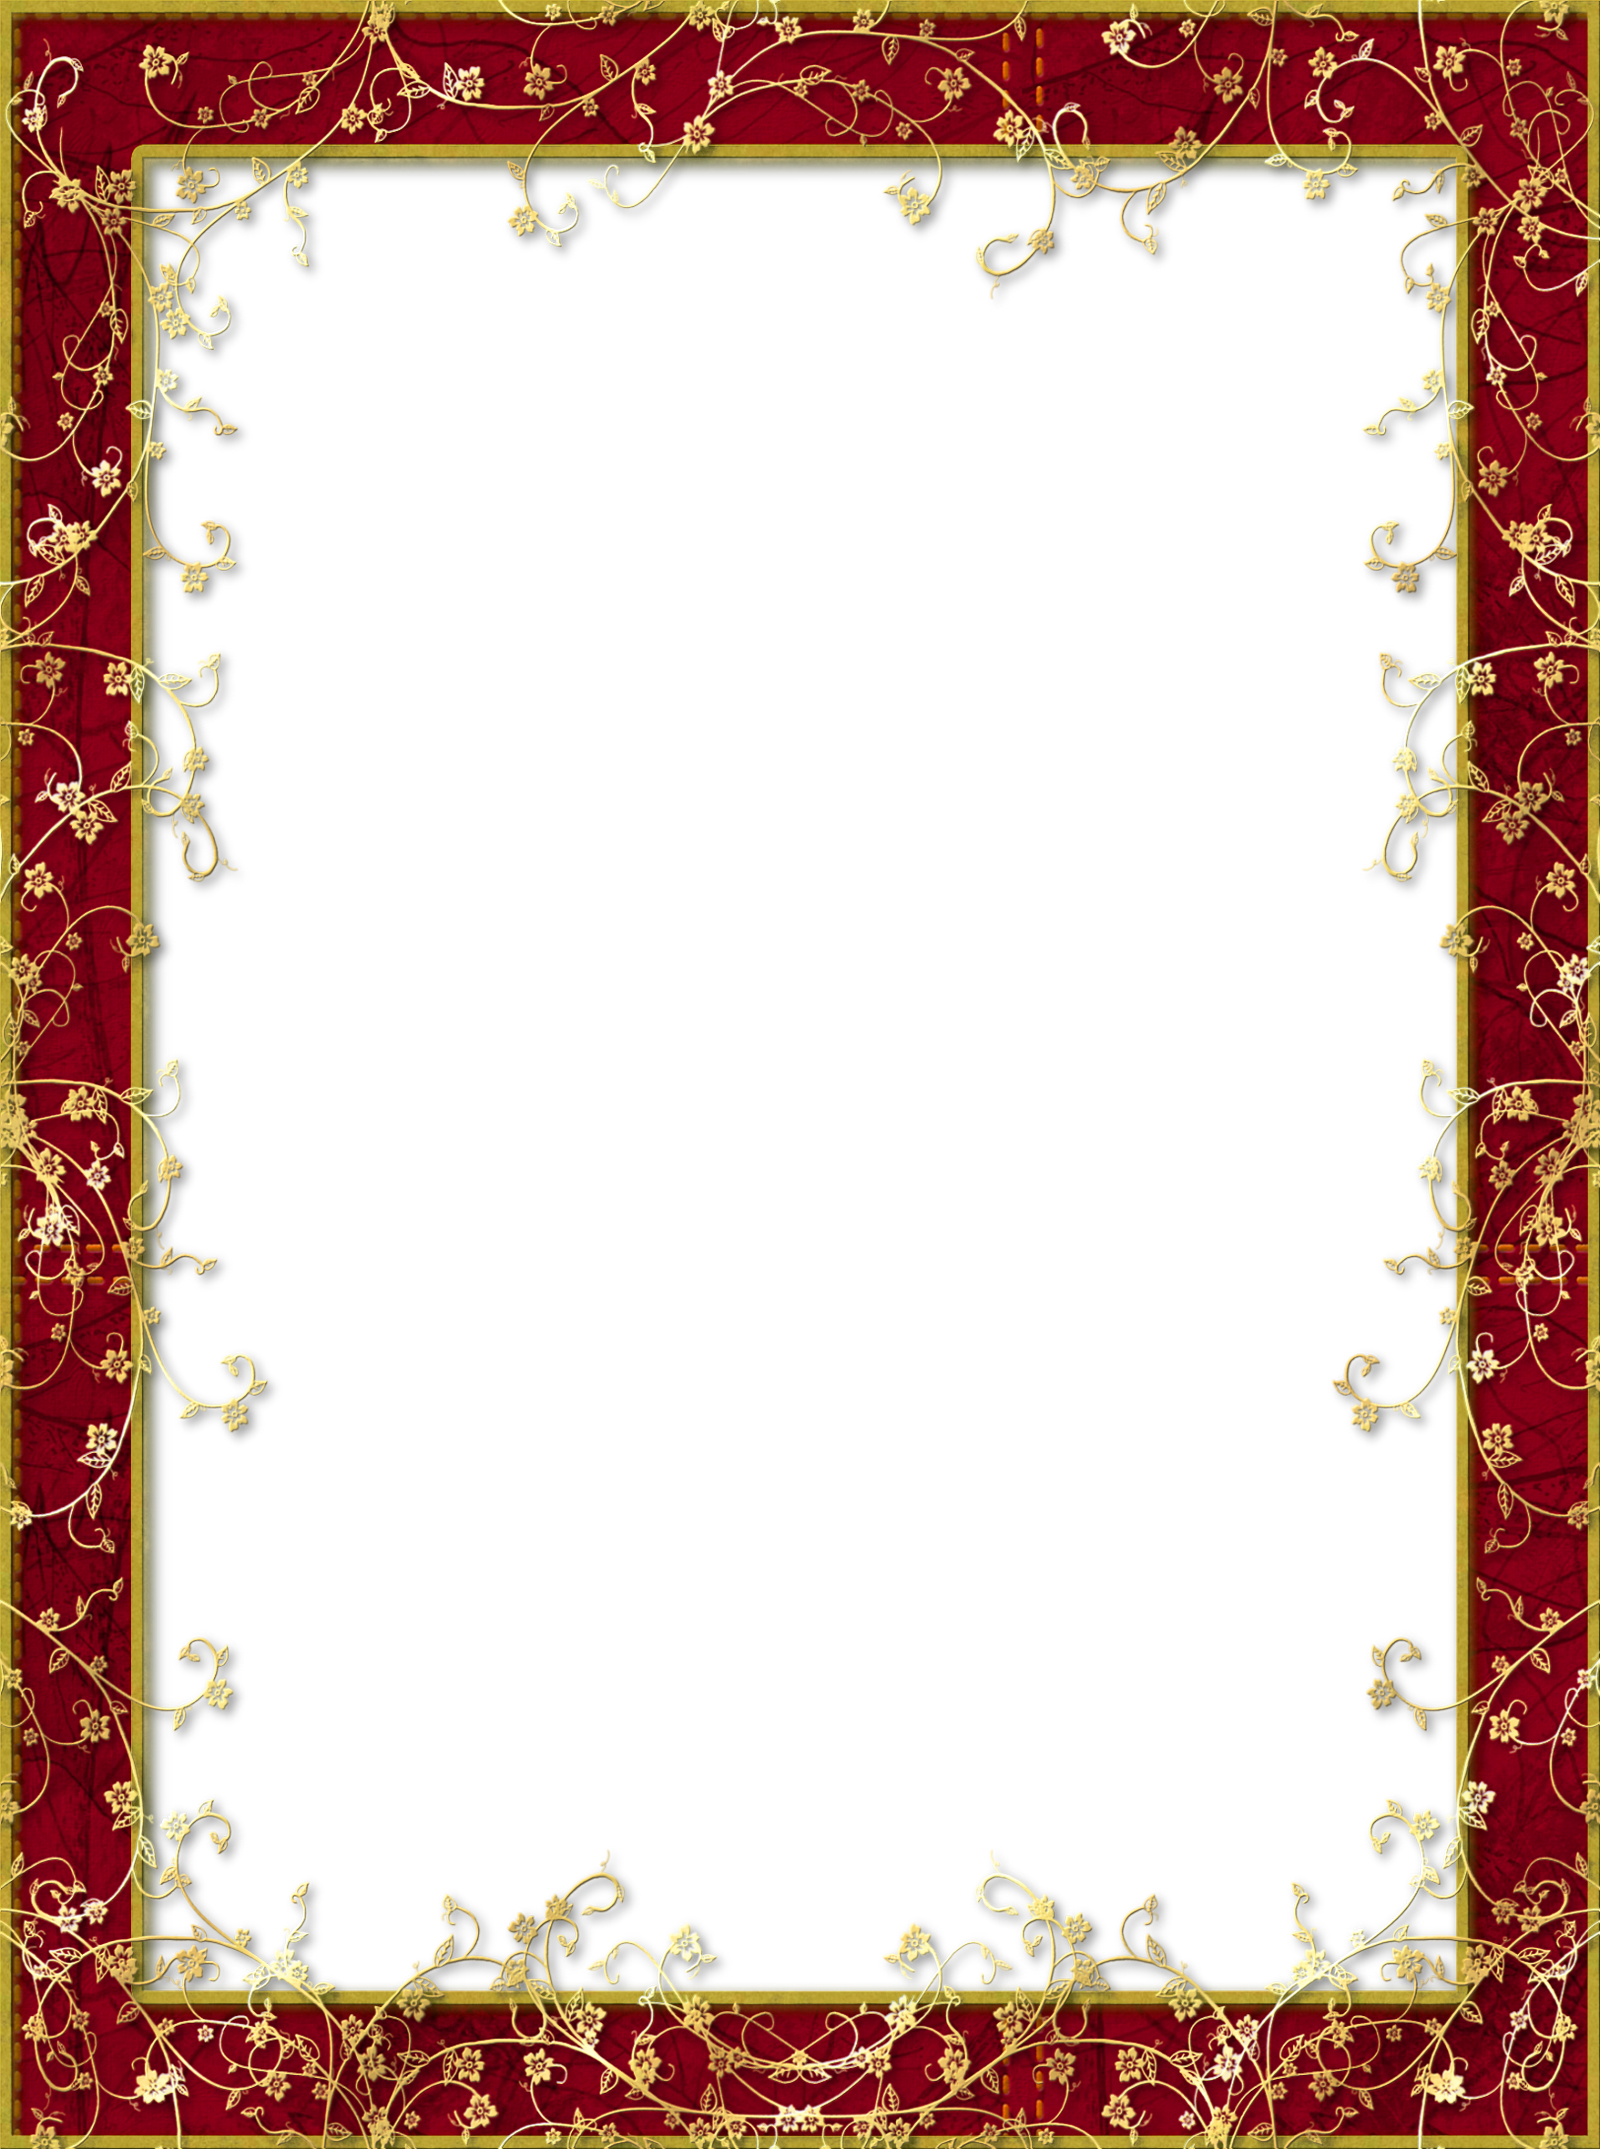 Png photo frames. Red transparent frame with